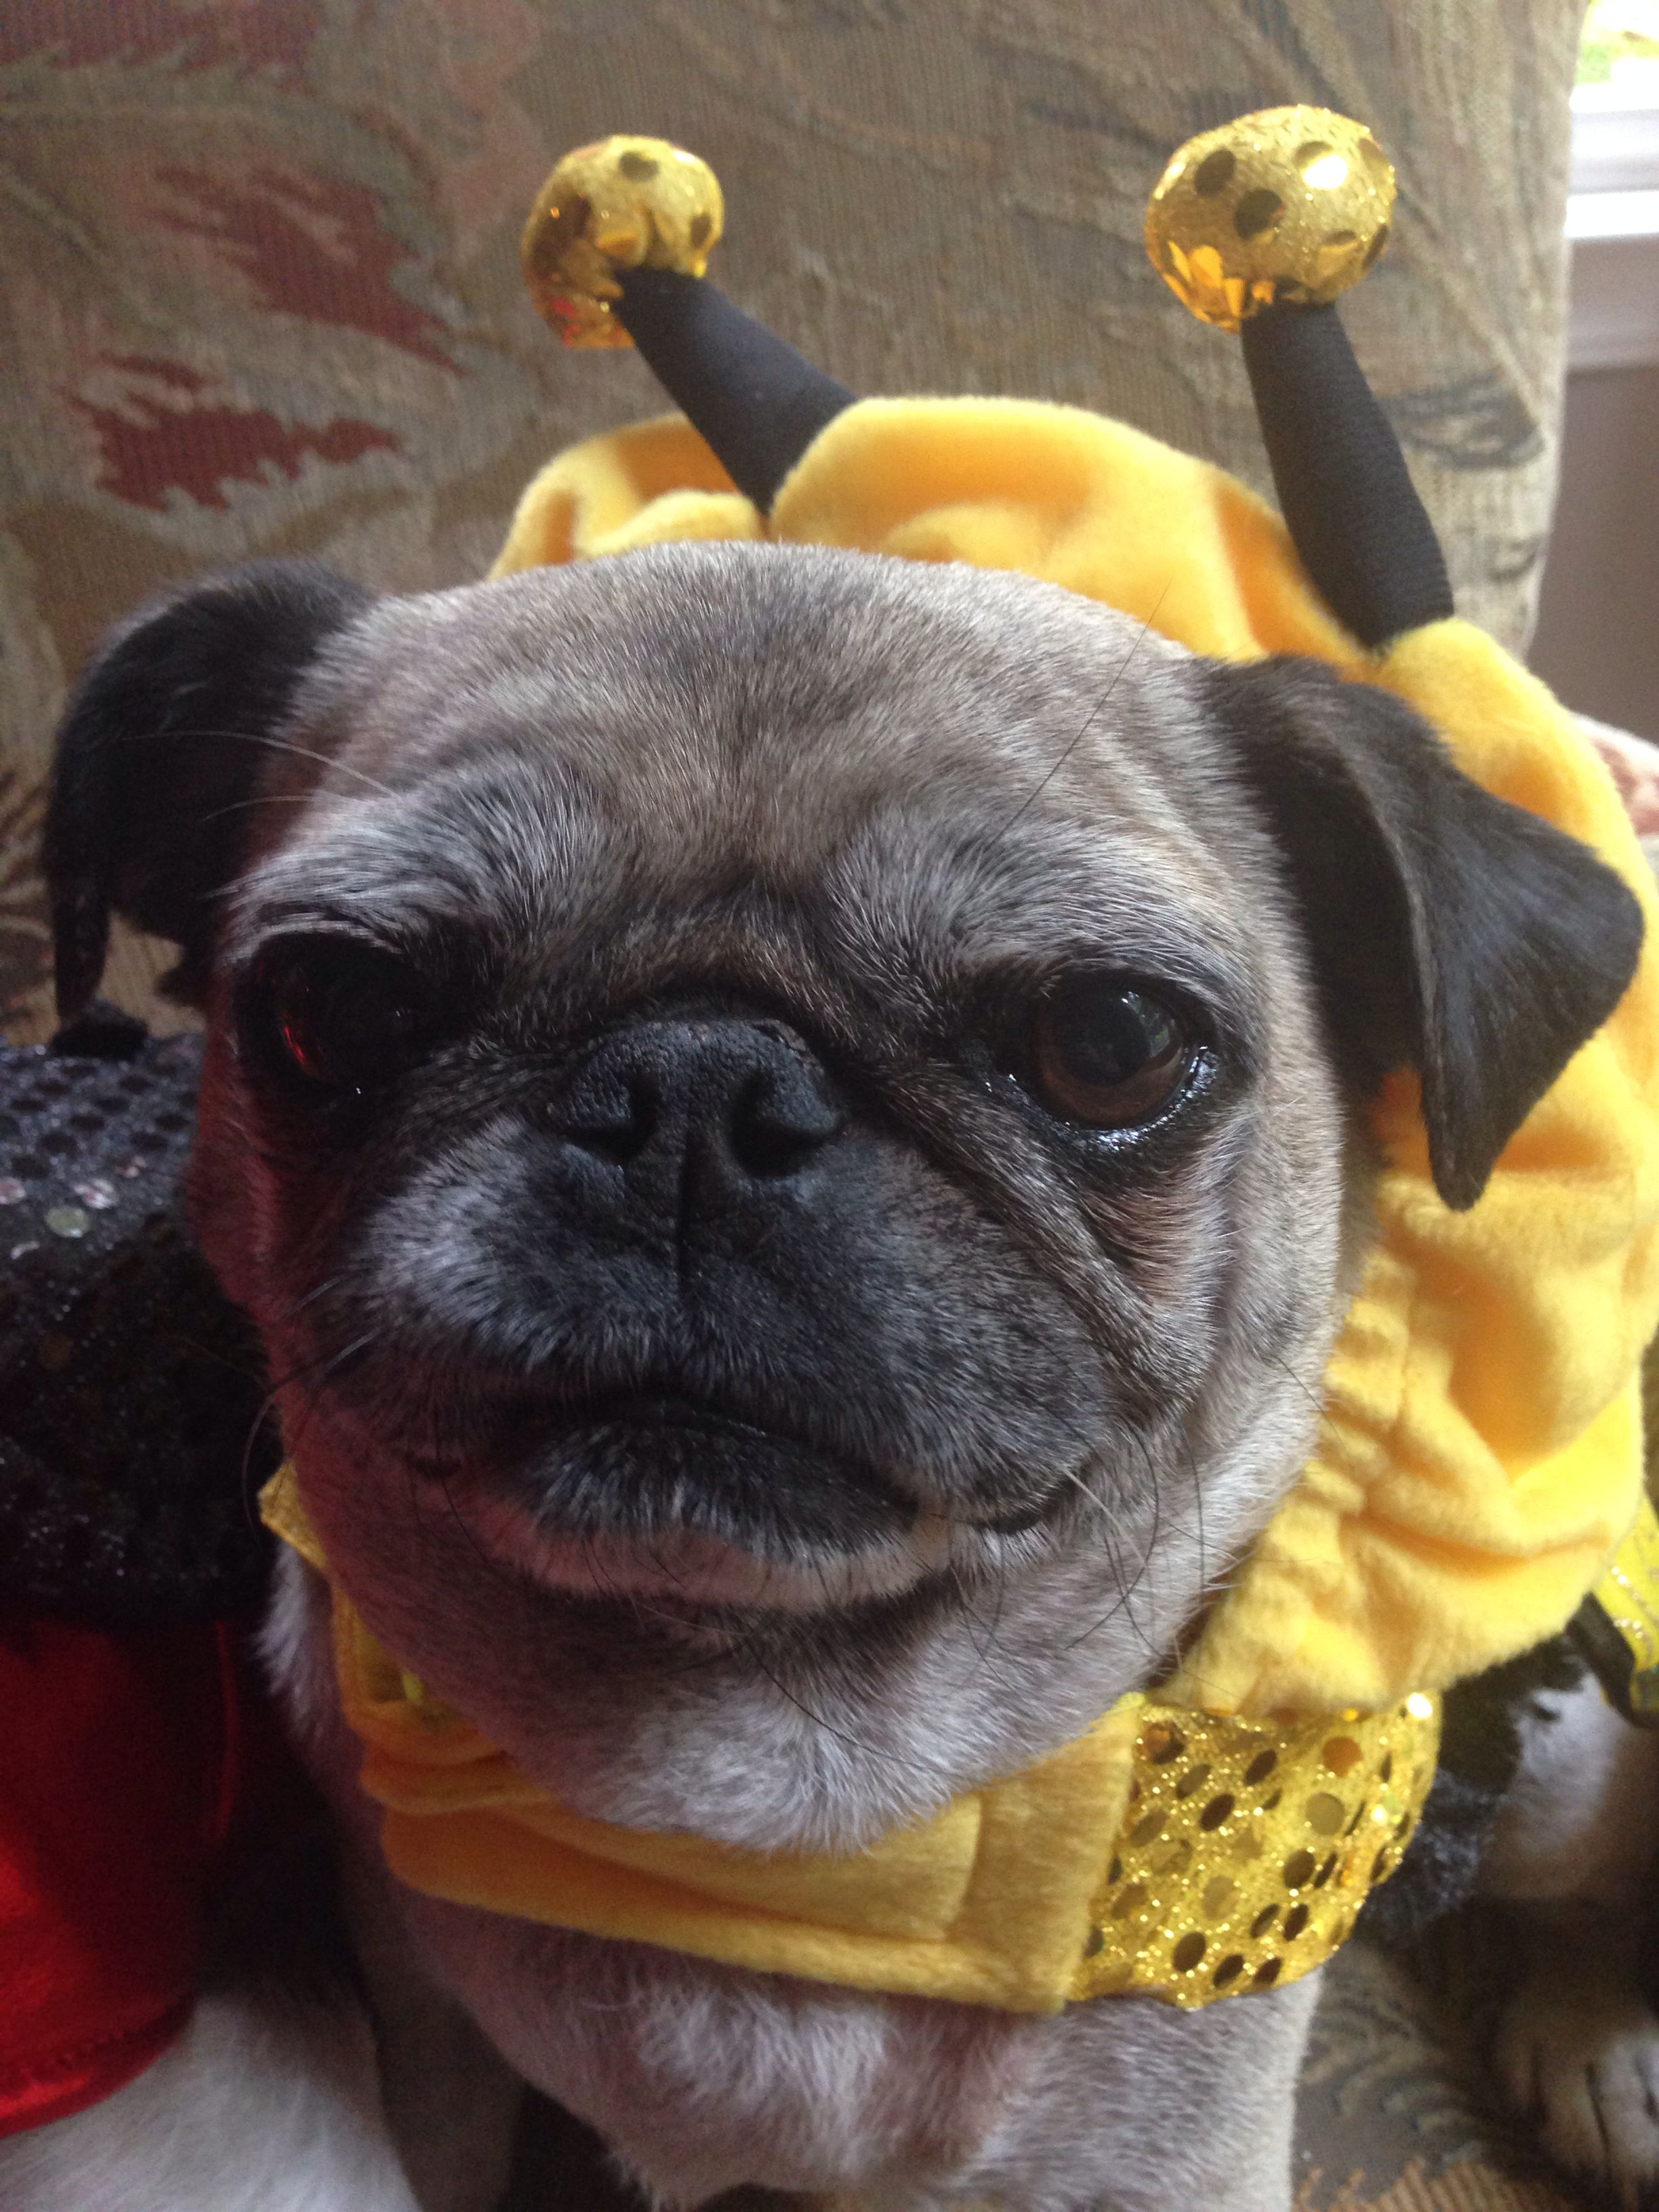 Happy pugaween all my friends I'm buzzing around town in